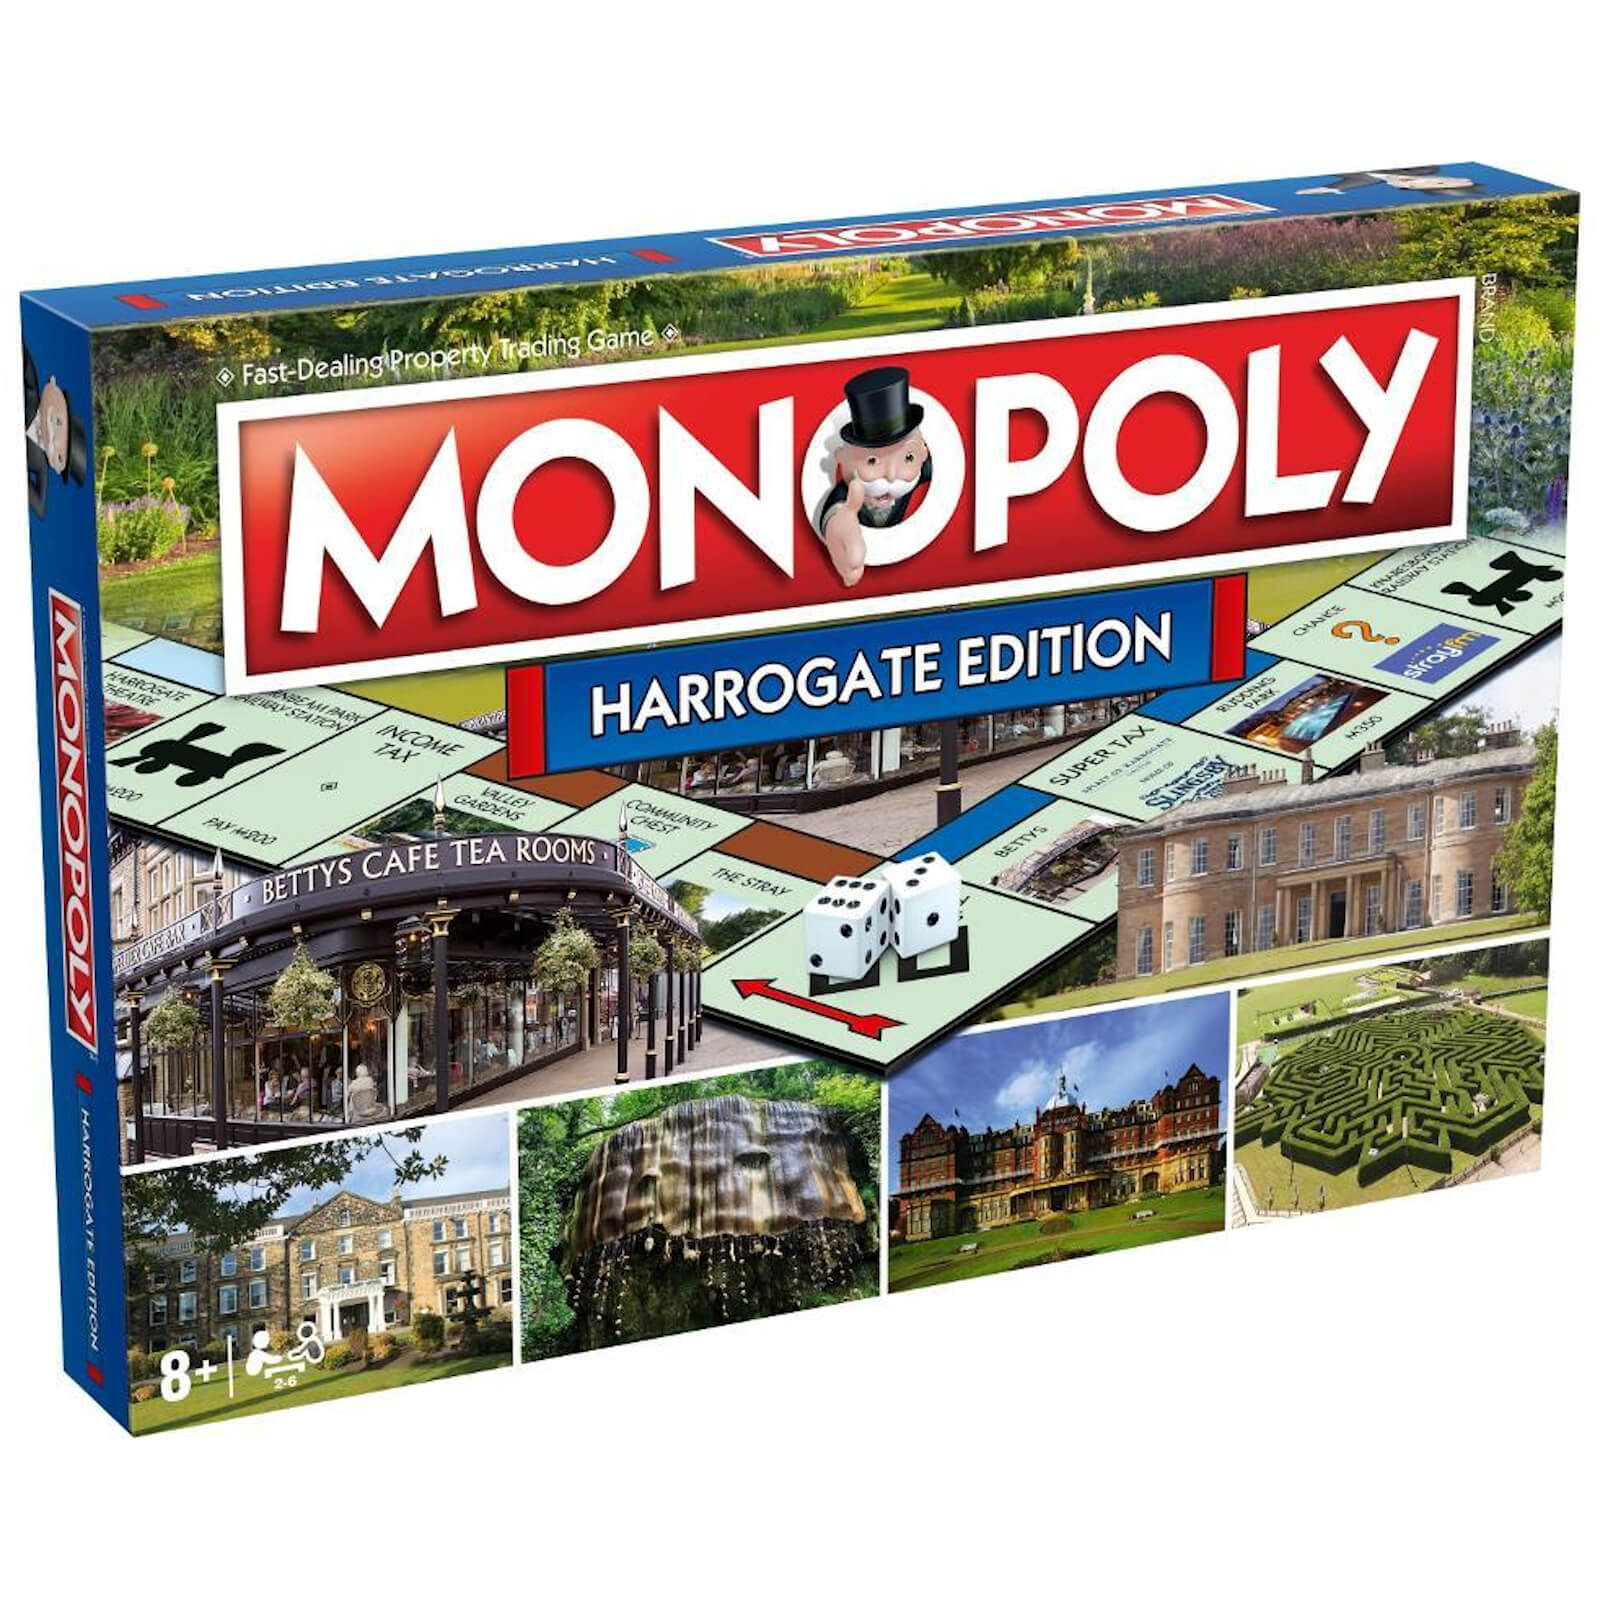 Image of Monopoly Board Game - Harrogate Edition